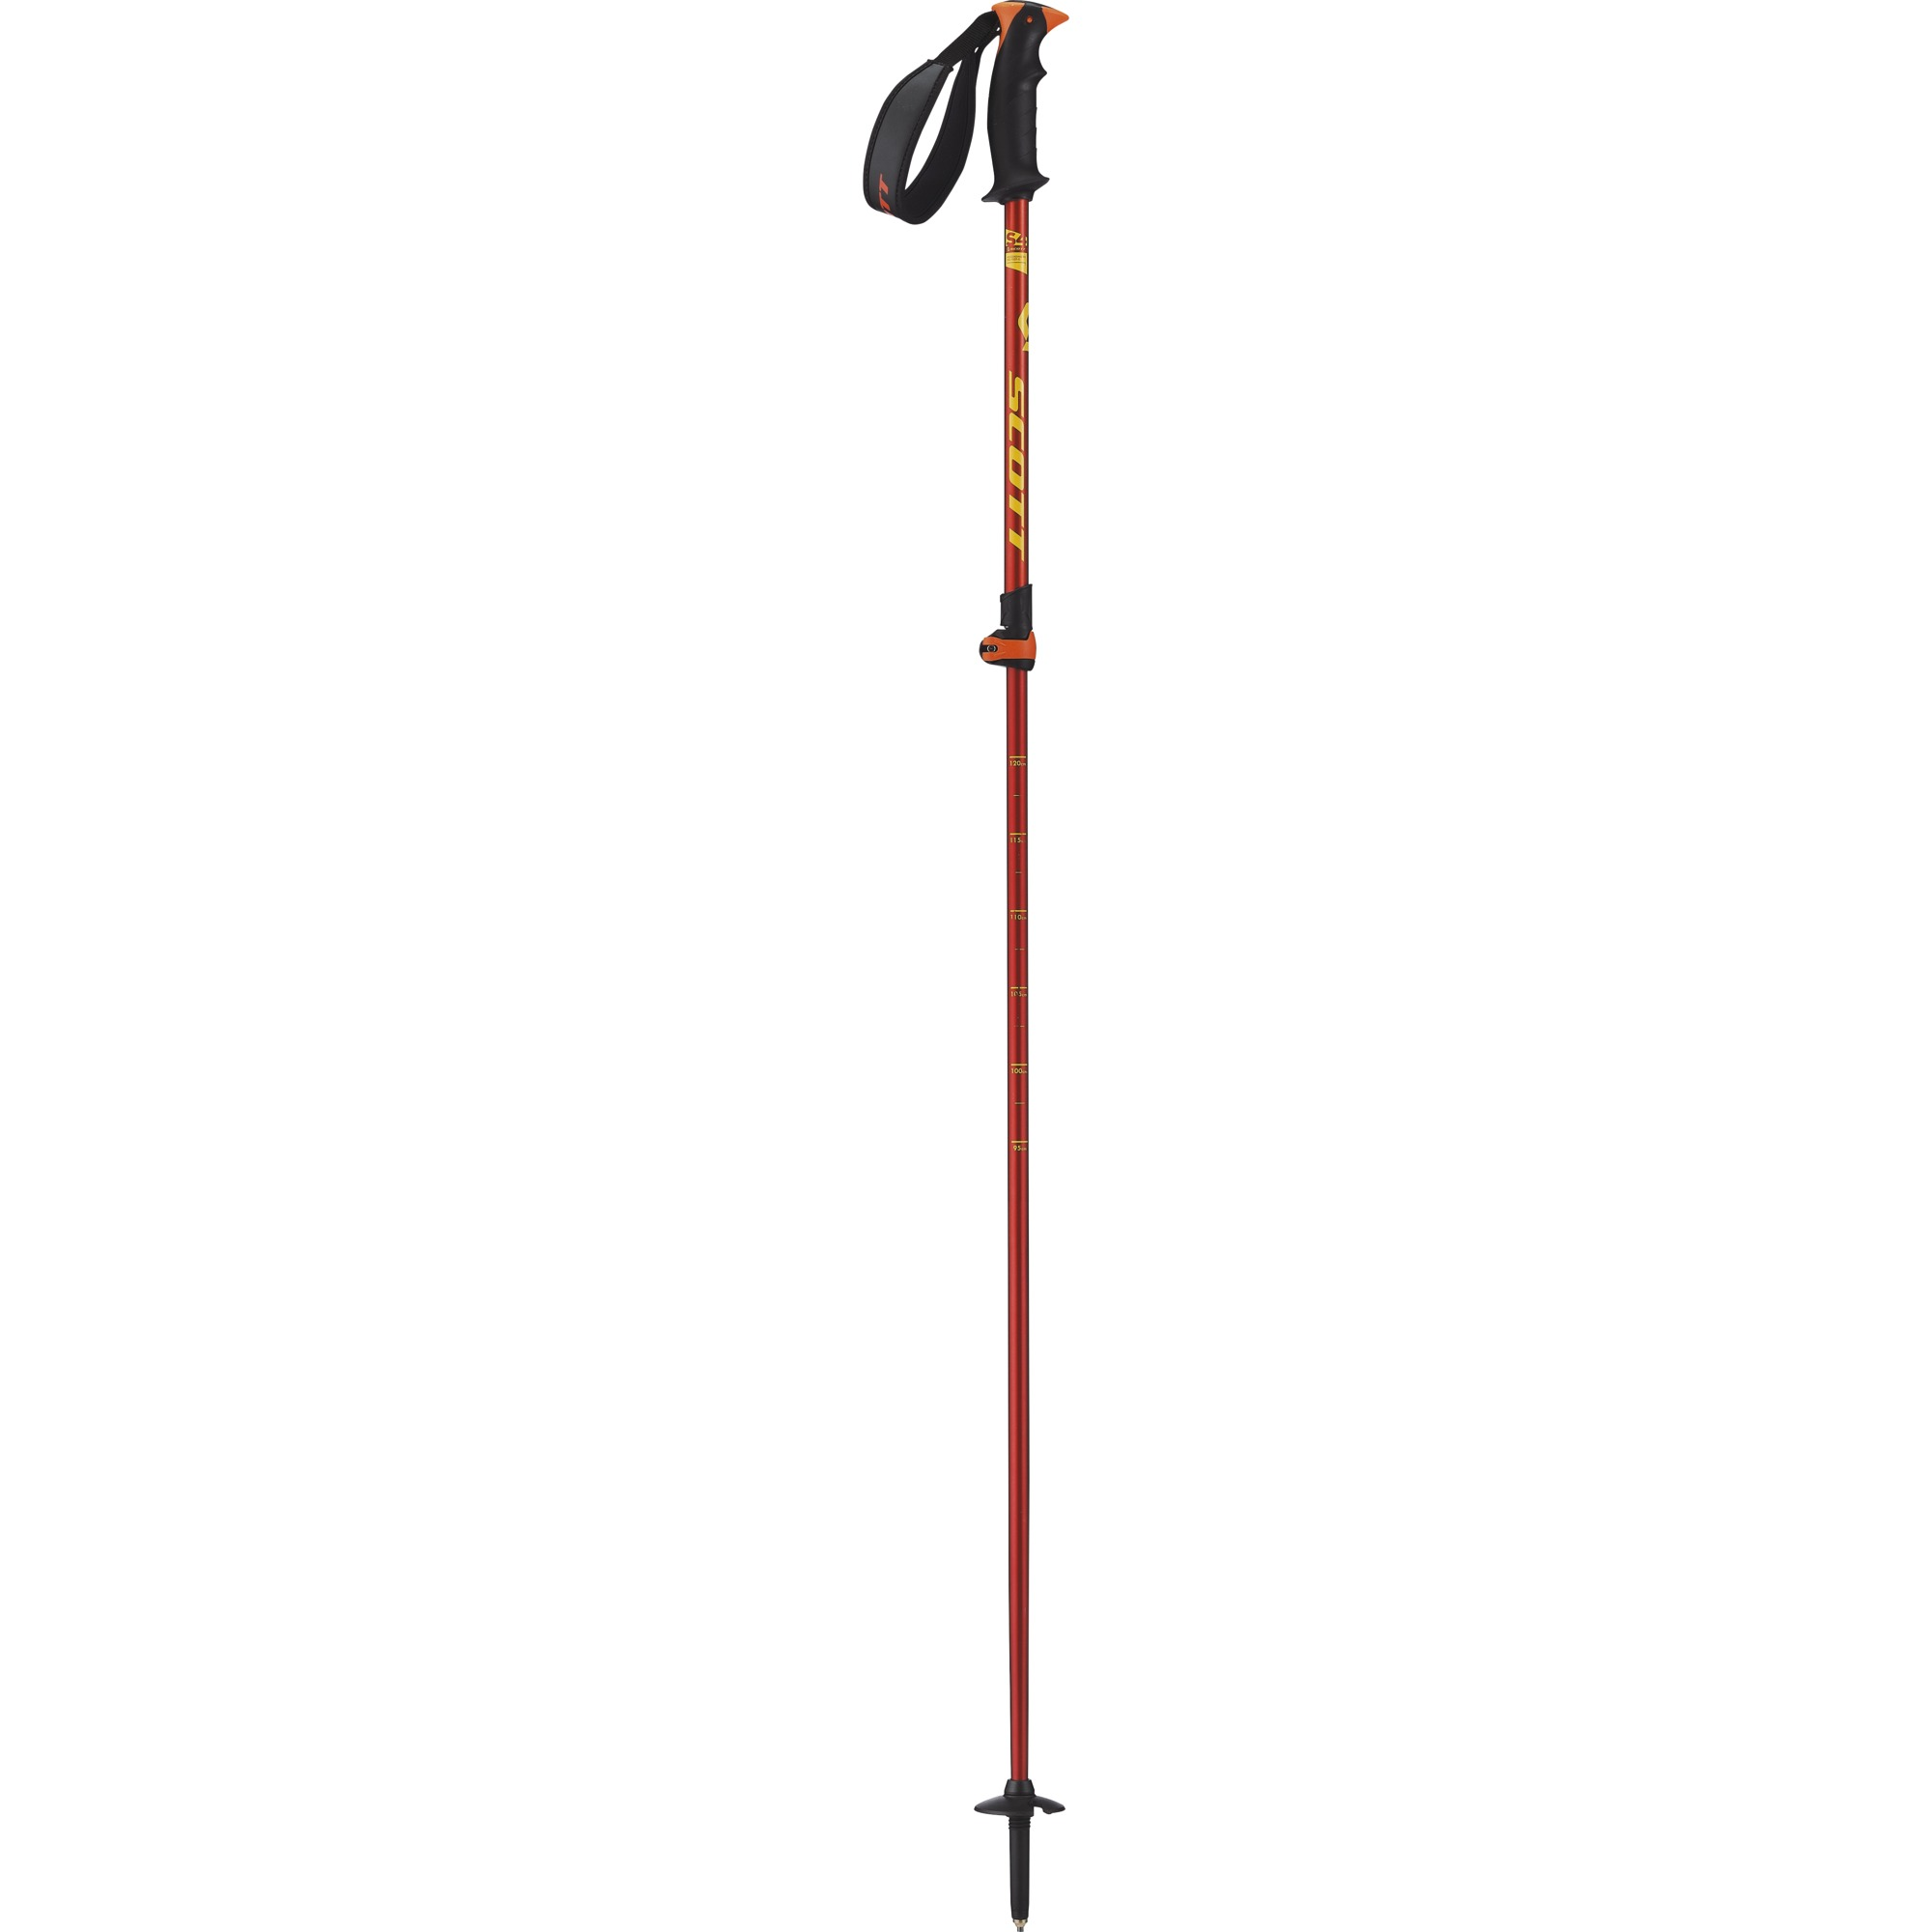 SCOTT Cascade 2-part Ski Pole